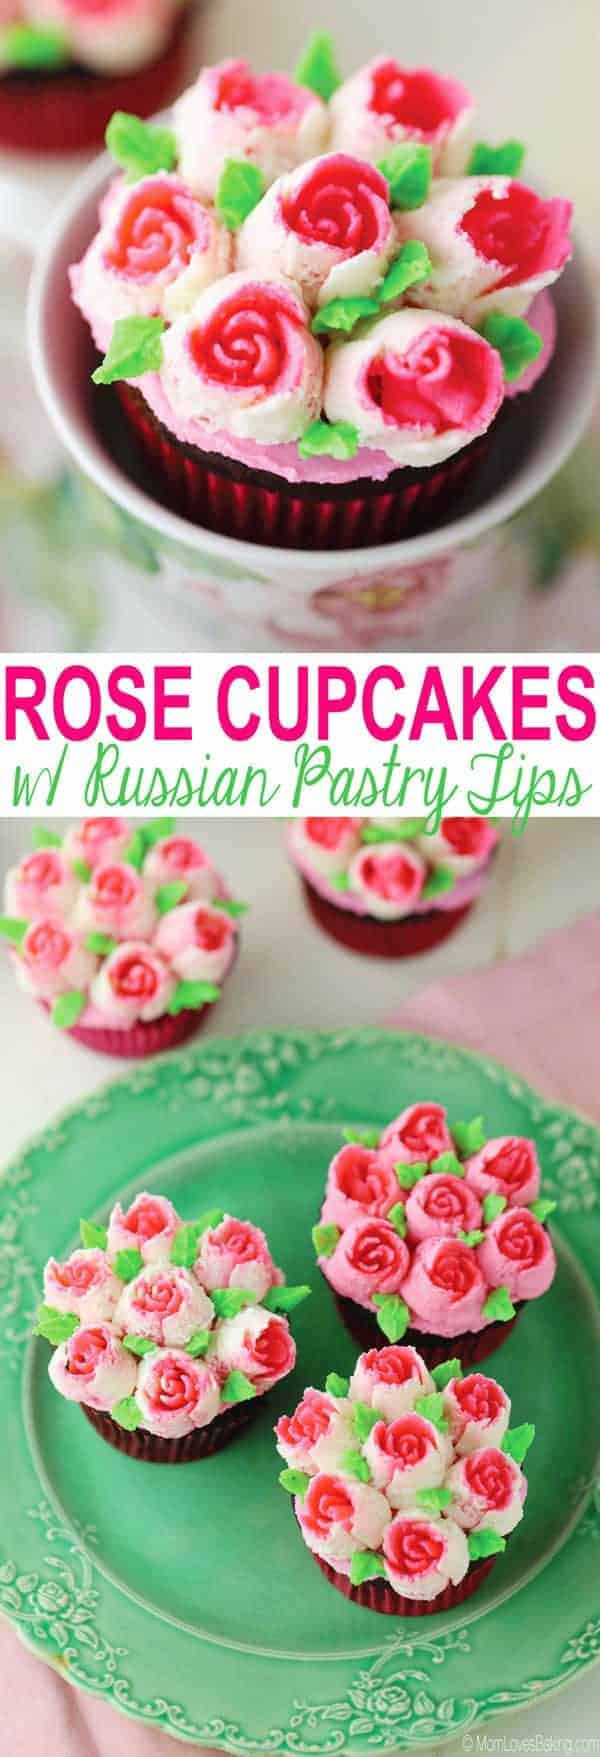 Buttercream roses with Russian pastry tips